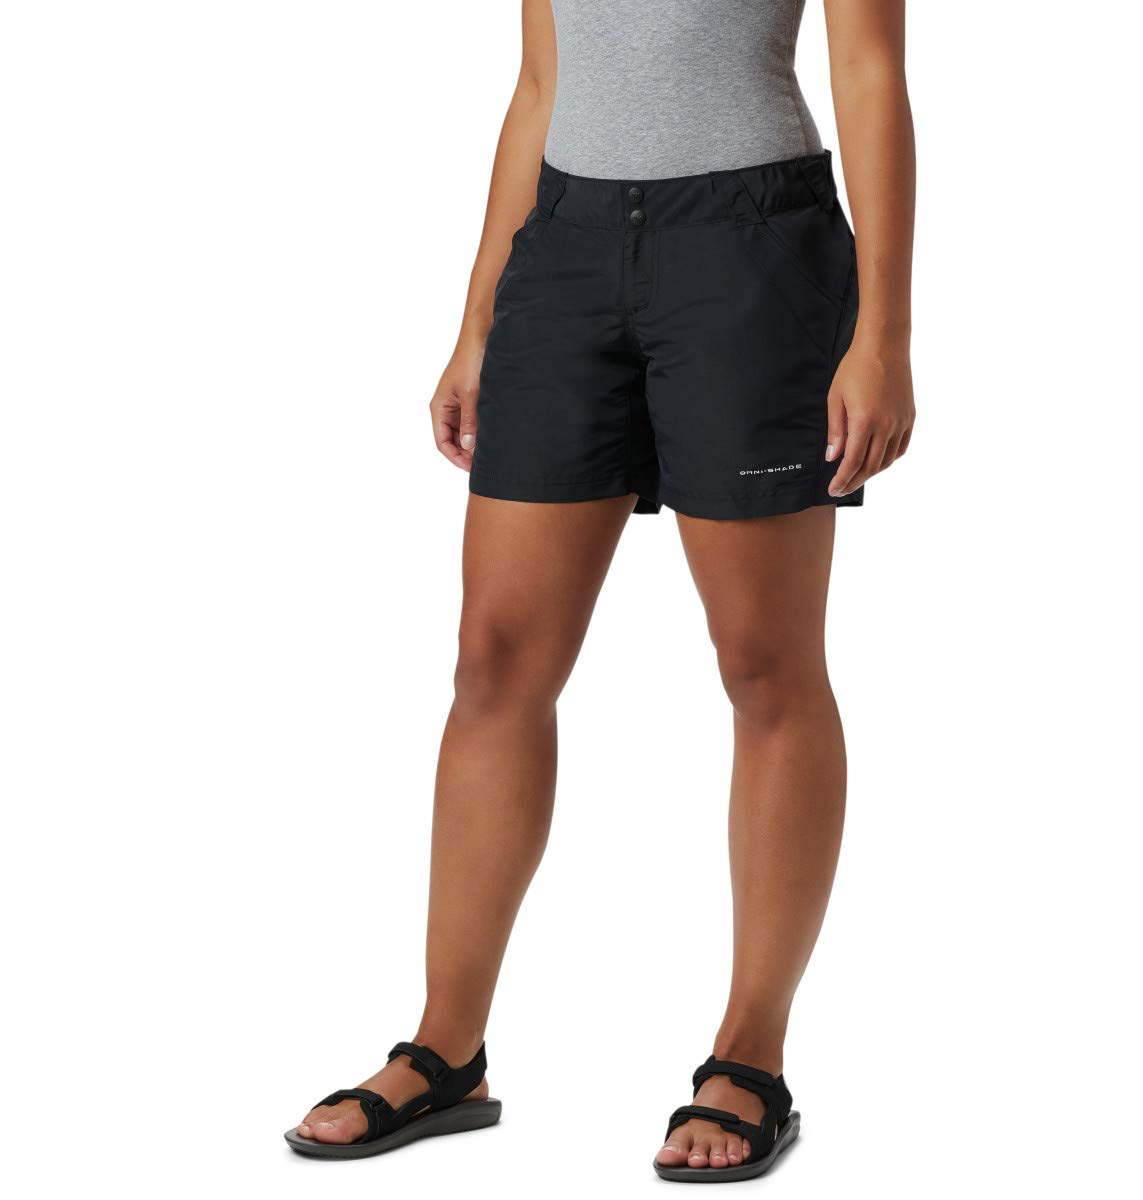 Columbia Women's Coral Point II Short, UV Sun Protection, Moisture Wicking Fabric, Black, Small x 6'' Inseam by Columbia